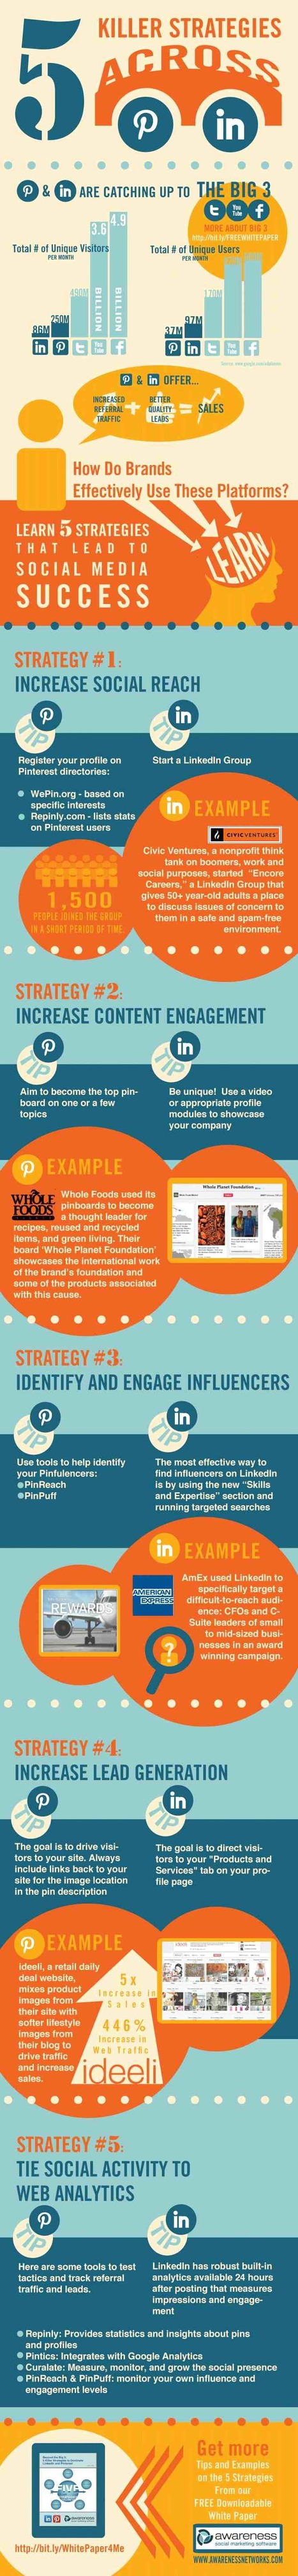 5 Killer Strategies for Pinterest and LinkedIn - Socialnomics [INFOGRAPHIC] | Content Marketing & Content Curation Tools For Brands | Scoop.it